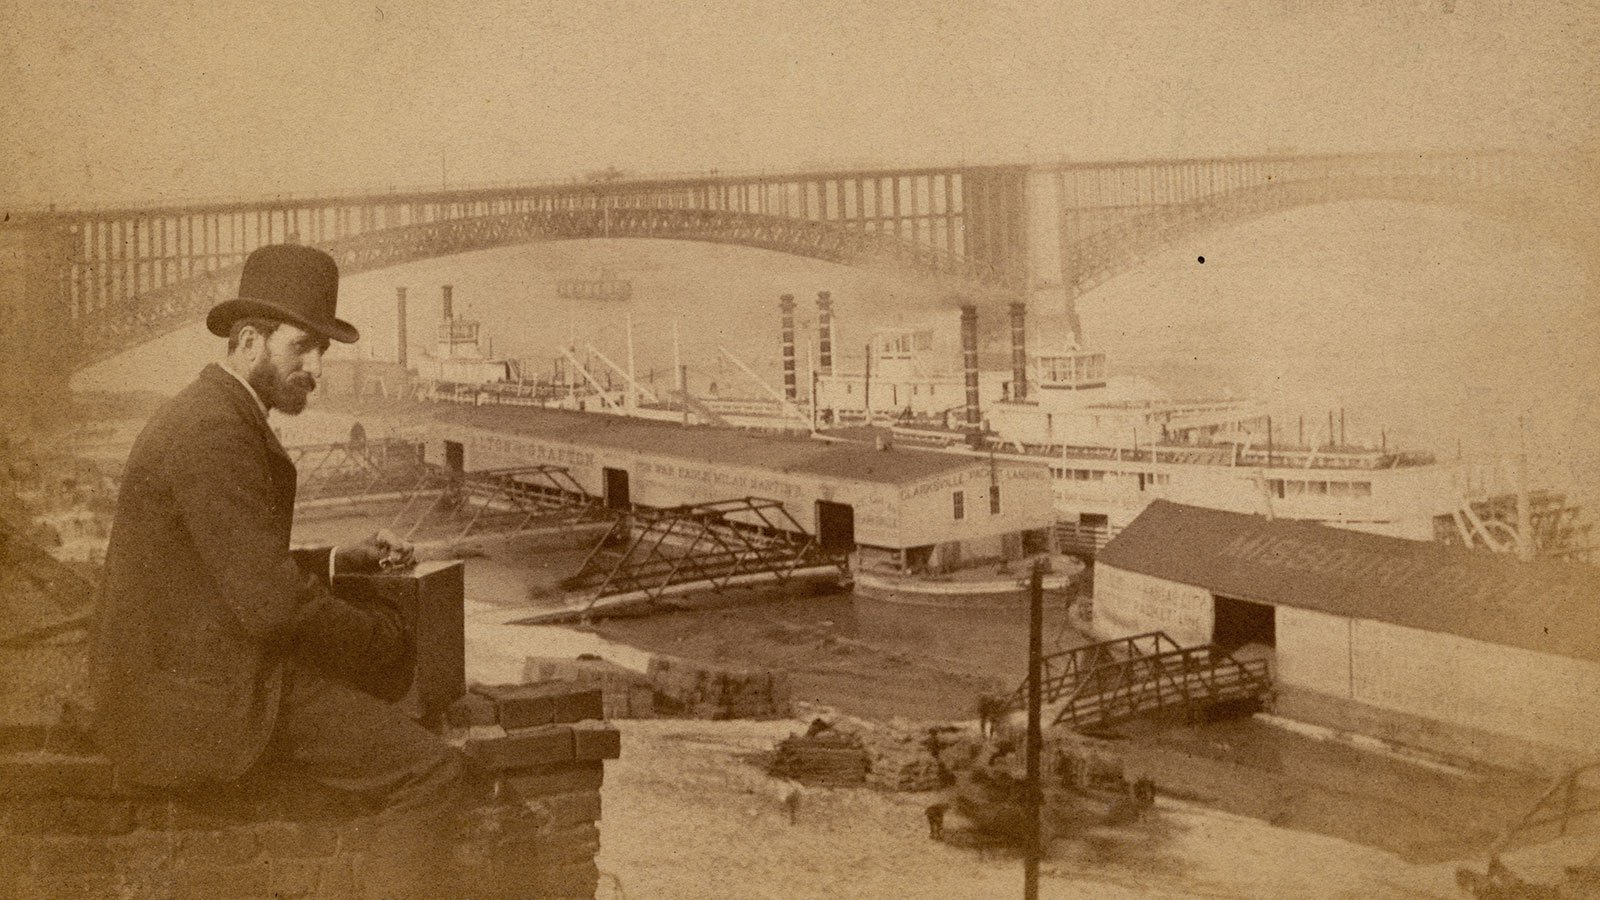 River traffic at the Eads Bridge, with Professor William Butler in the foreground